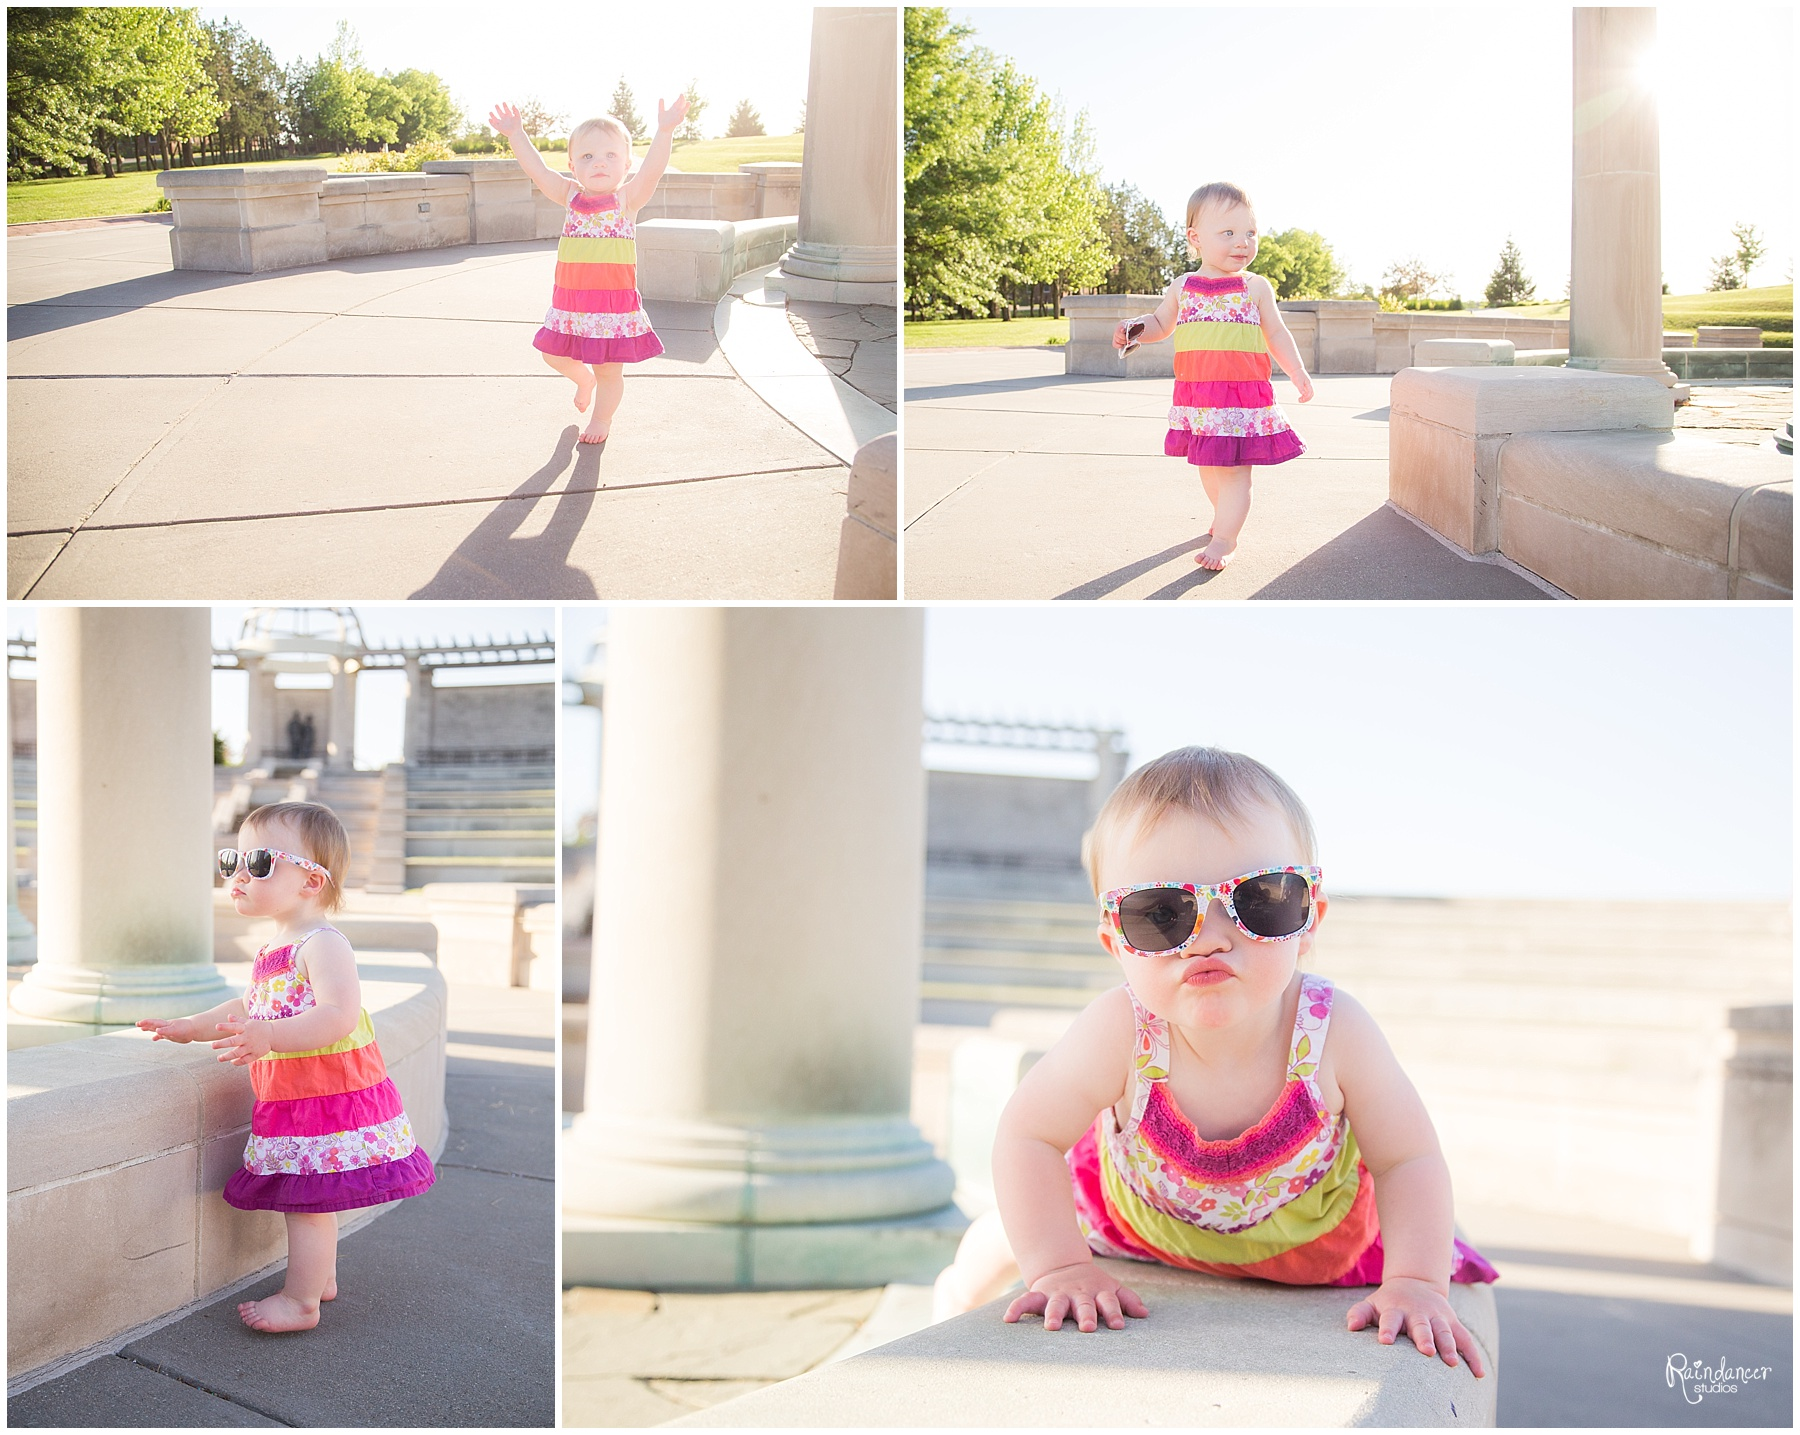 Indy baby photographer, Indianapolis baby photographer, Indianapolis family photographer, Indianapolis family photography, Indy family photographer, Indy family photography, Indy children photographer, Indianapolis children photographer, Indianapolis lifestyle photographer